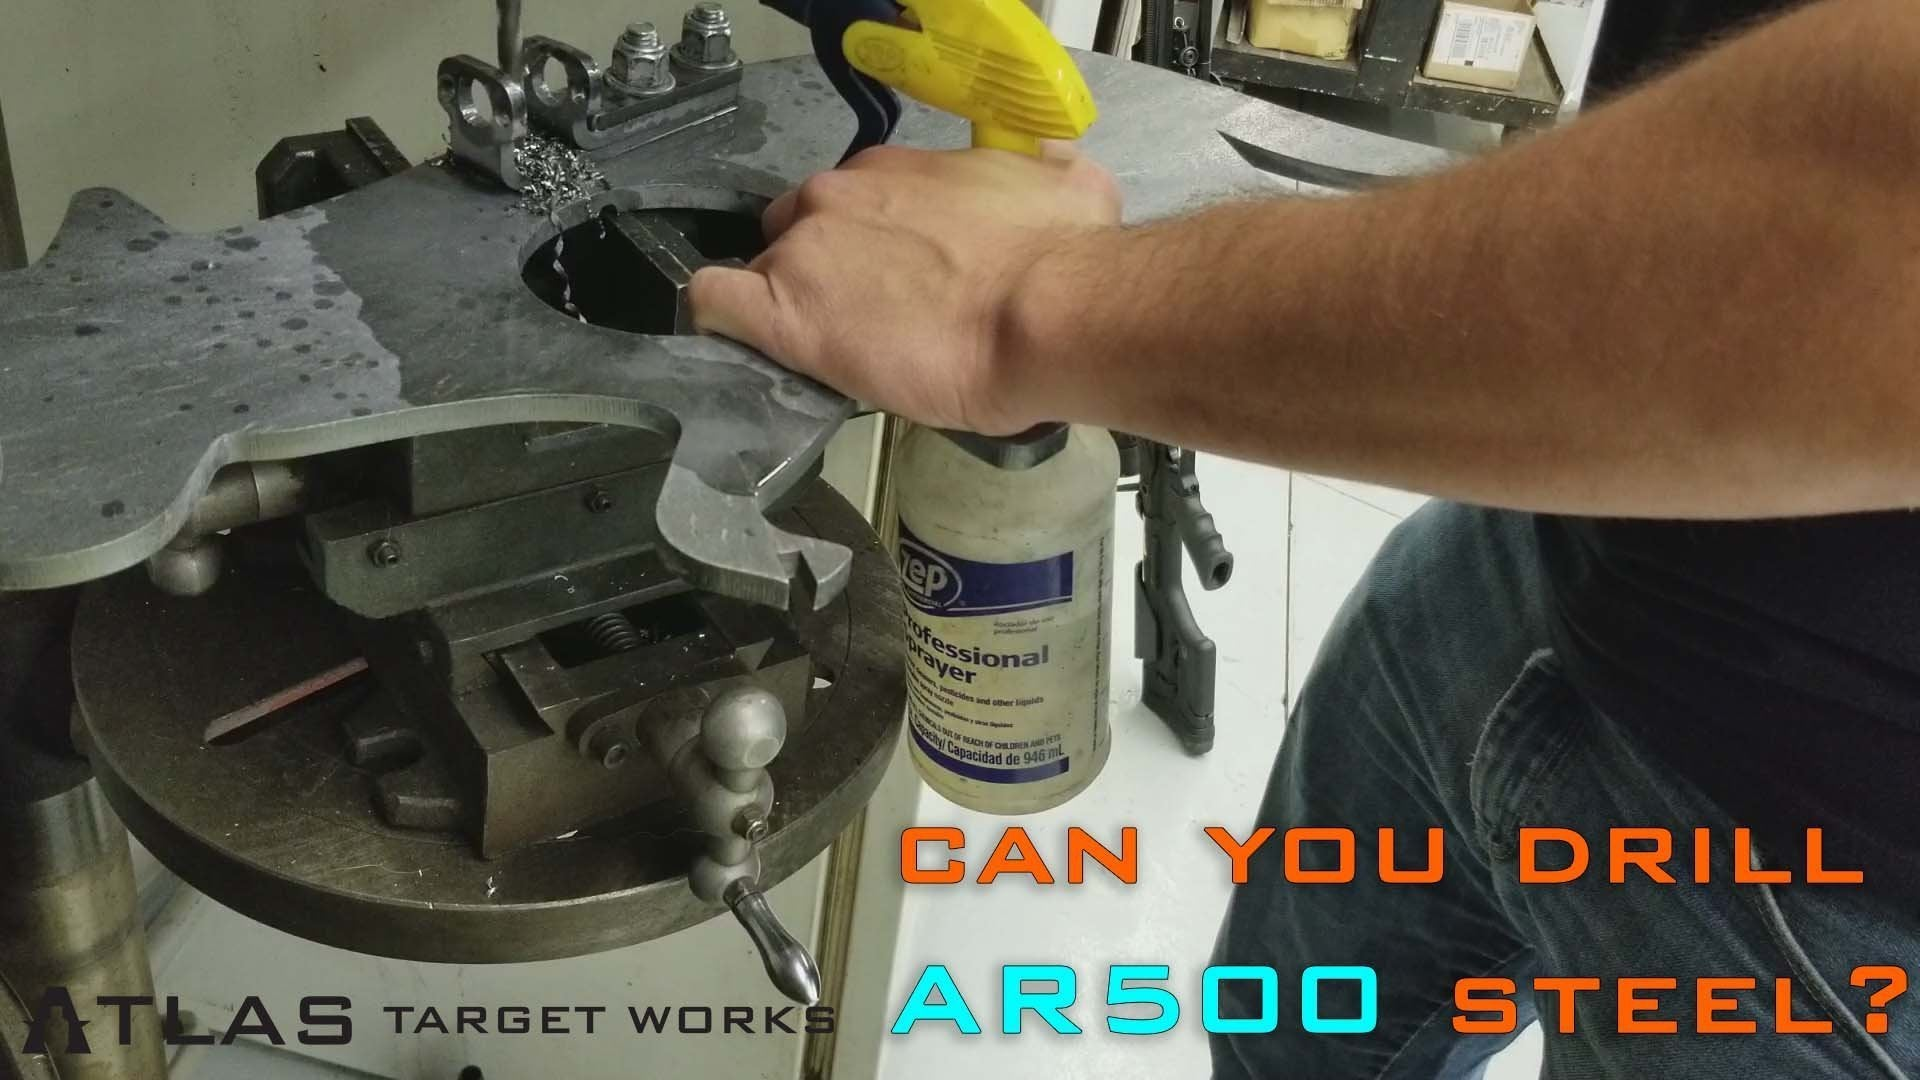 AR500 steel target having an additional hole drilled in it